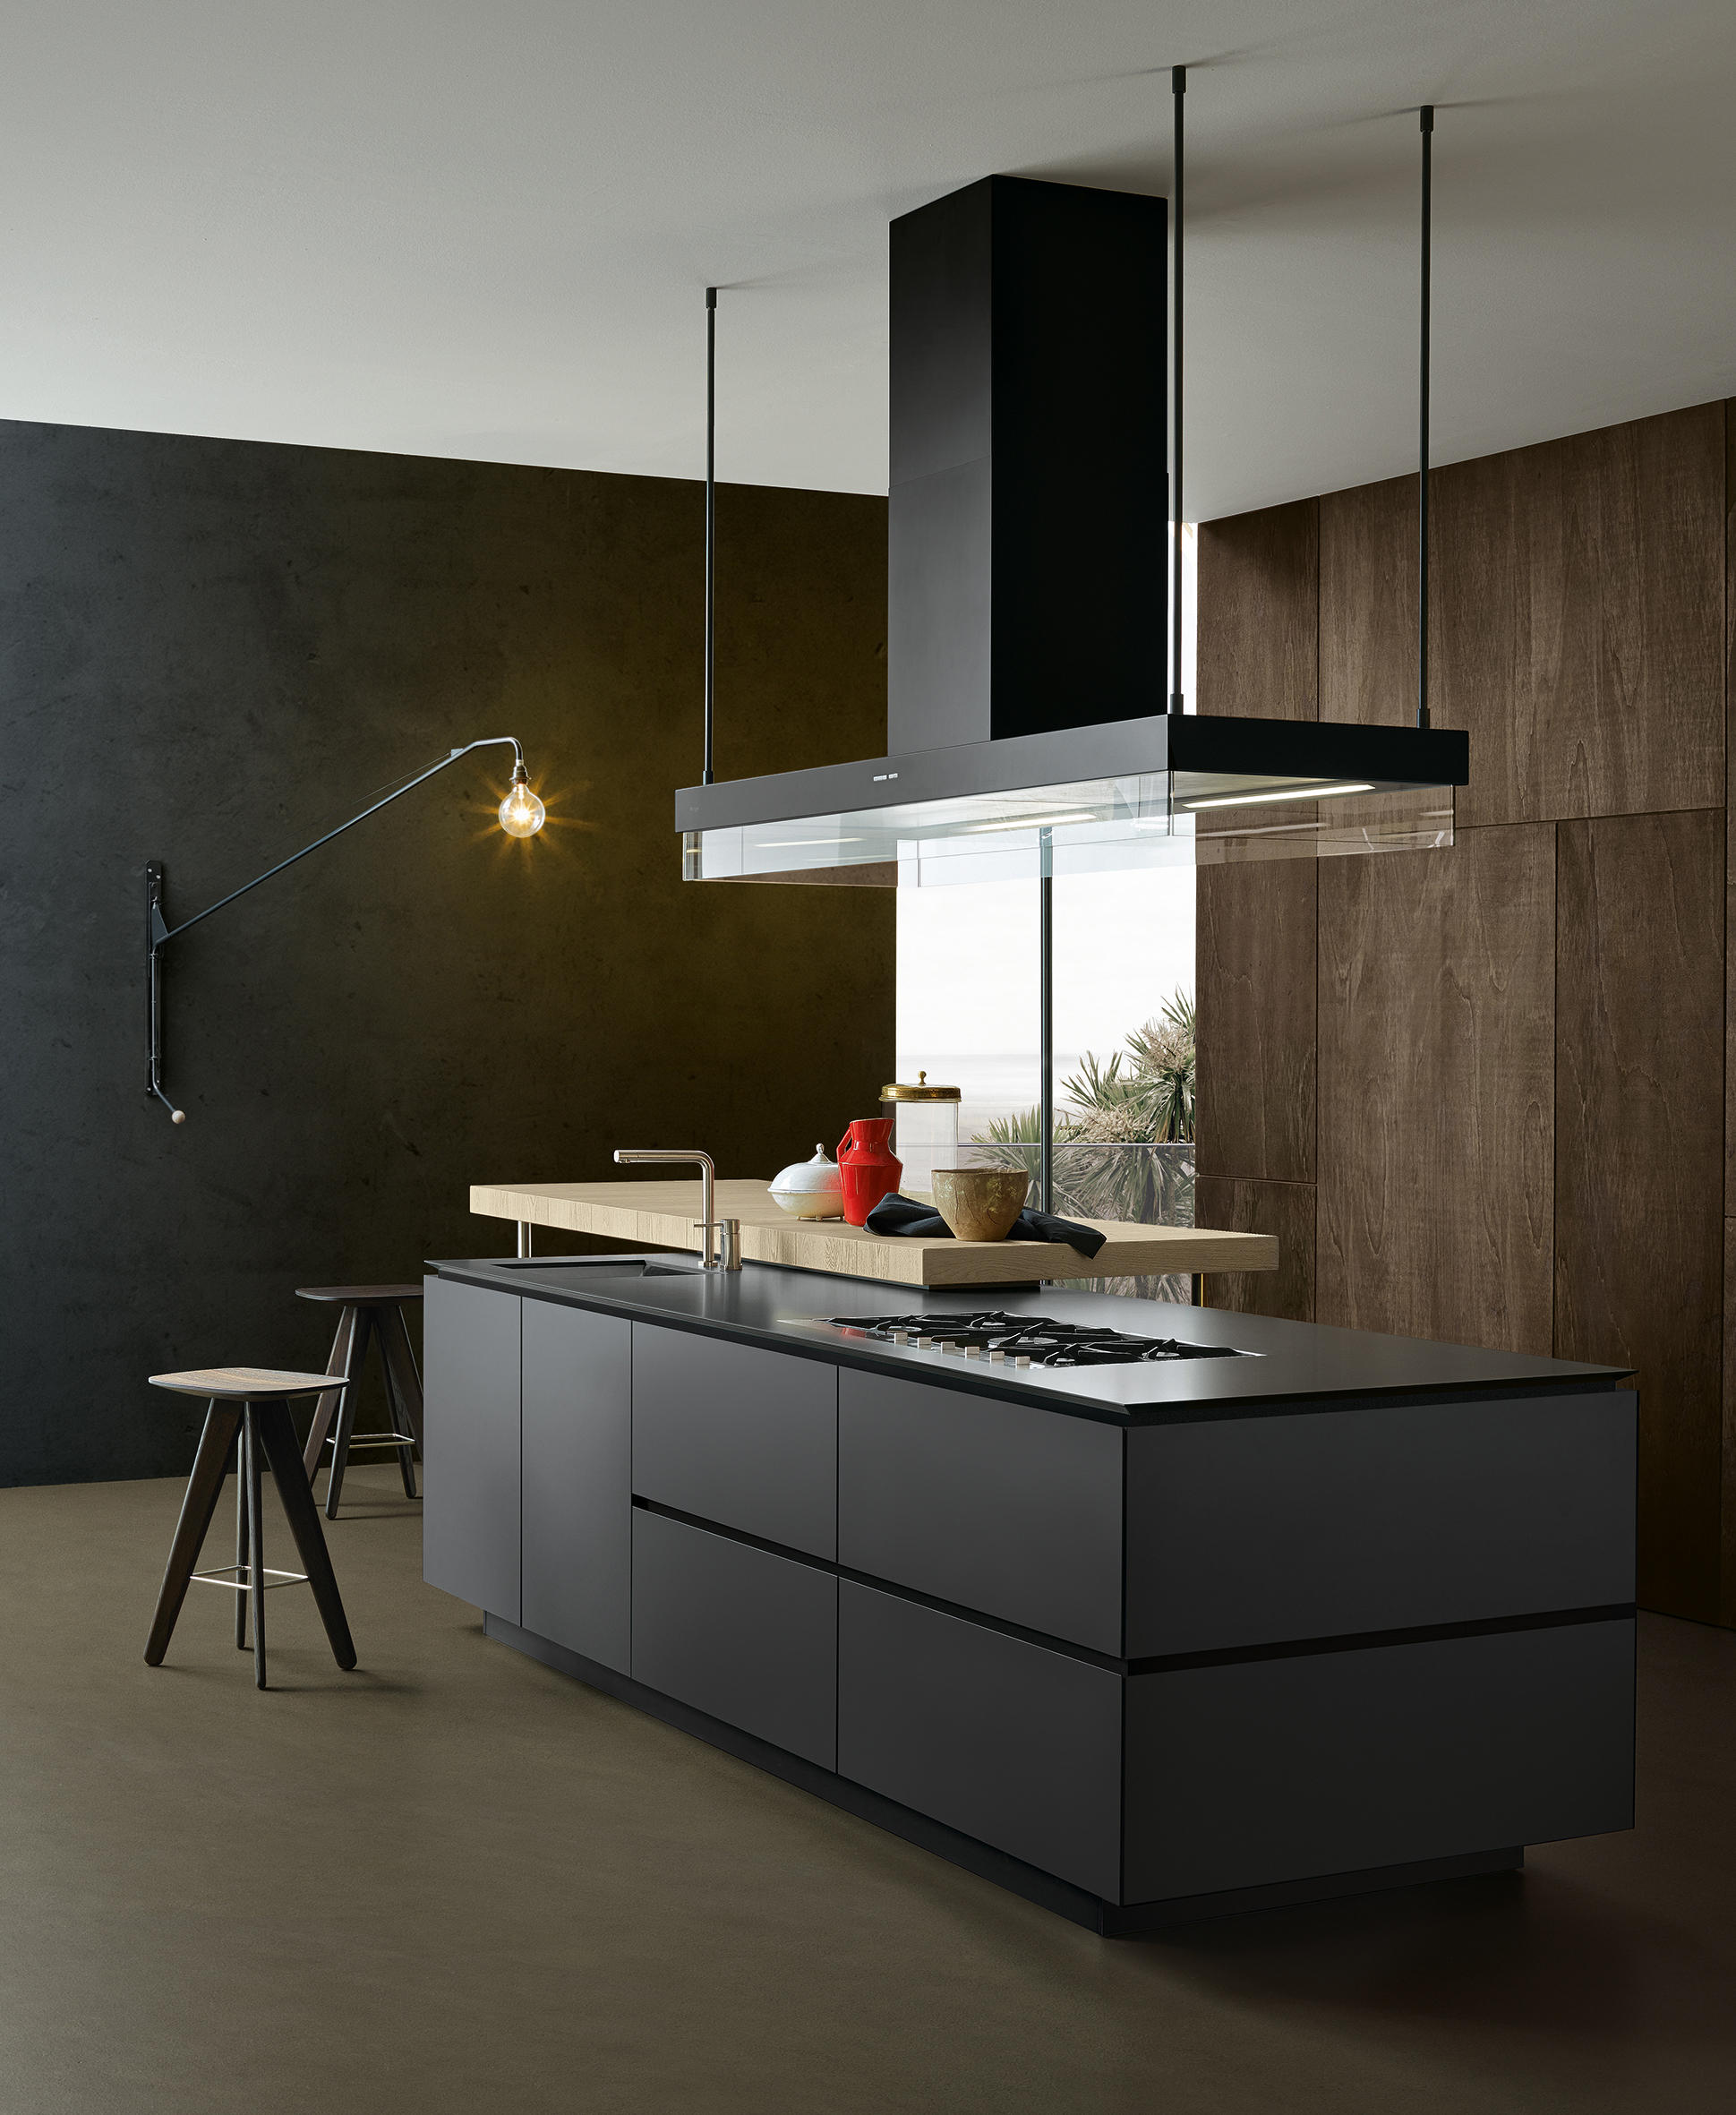 ARTEX - Cucine isola Poliform | Architonic